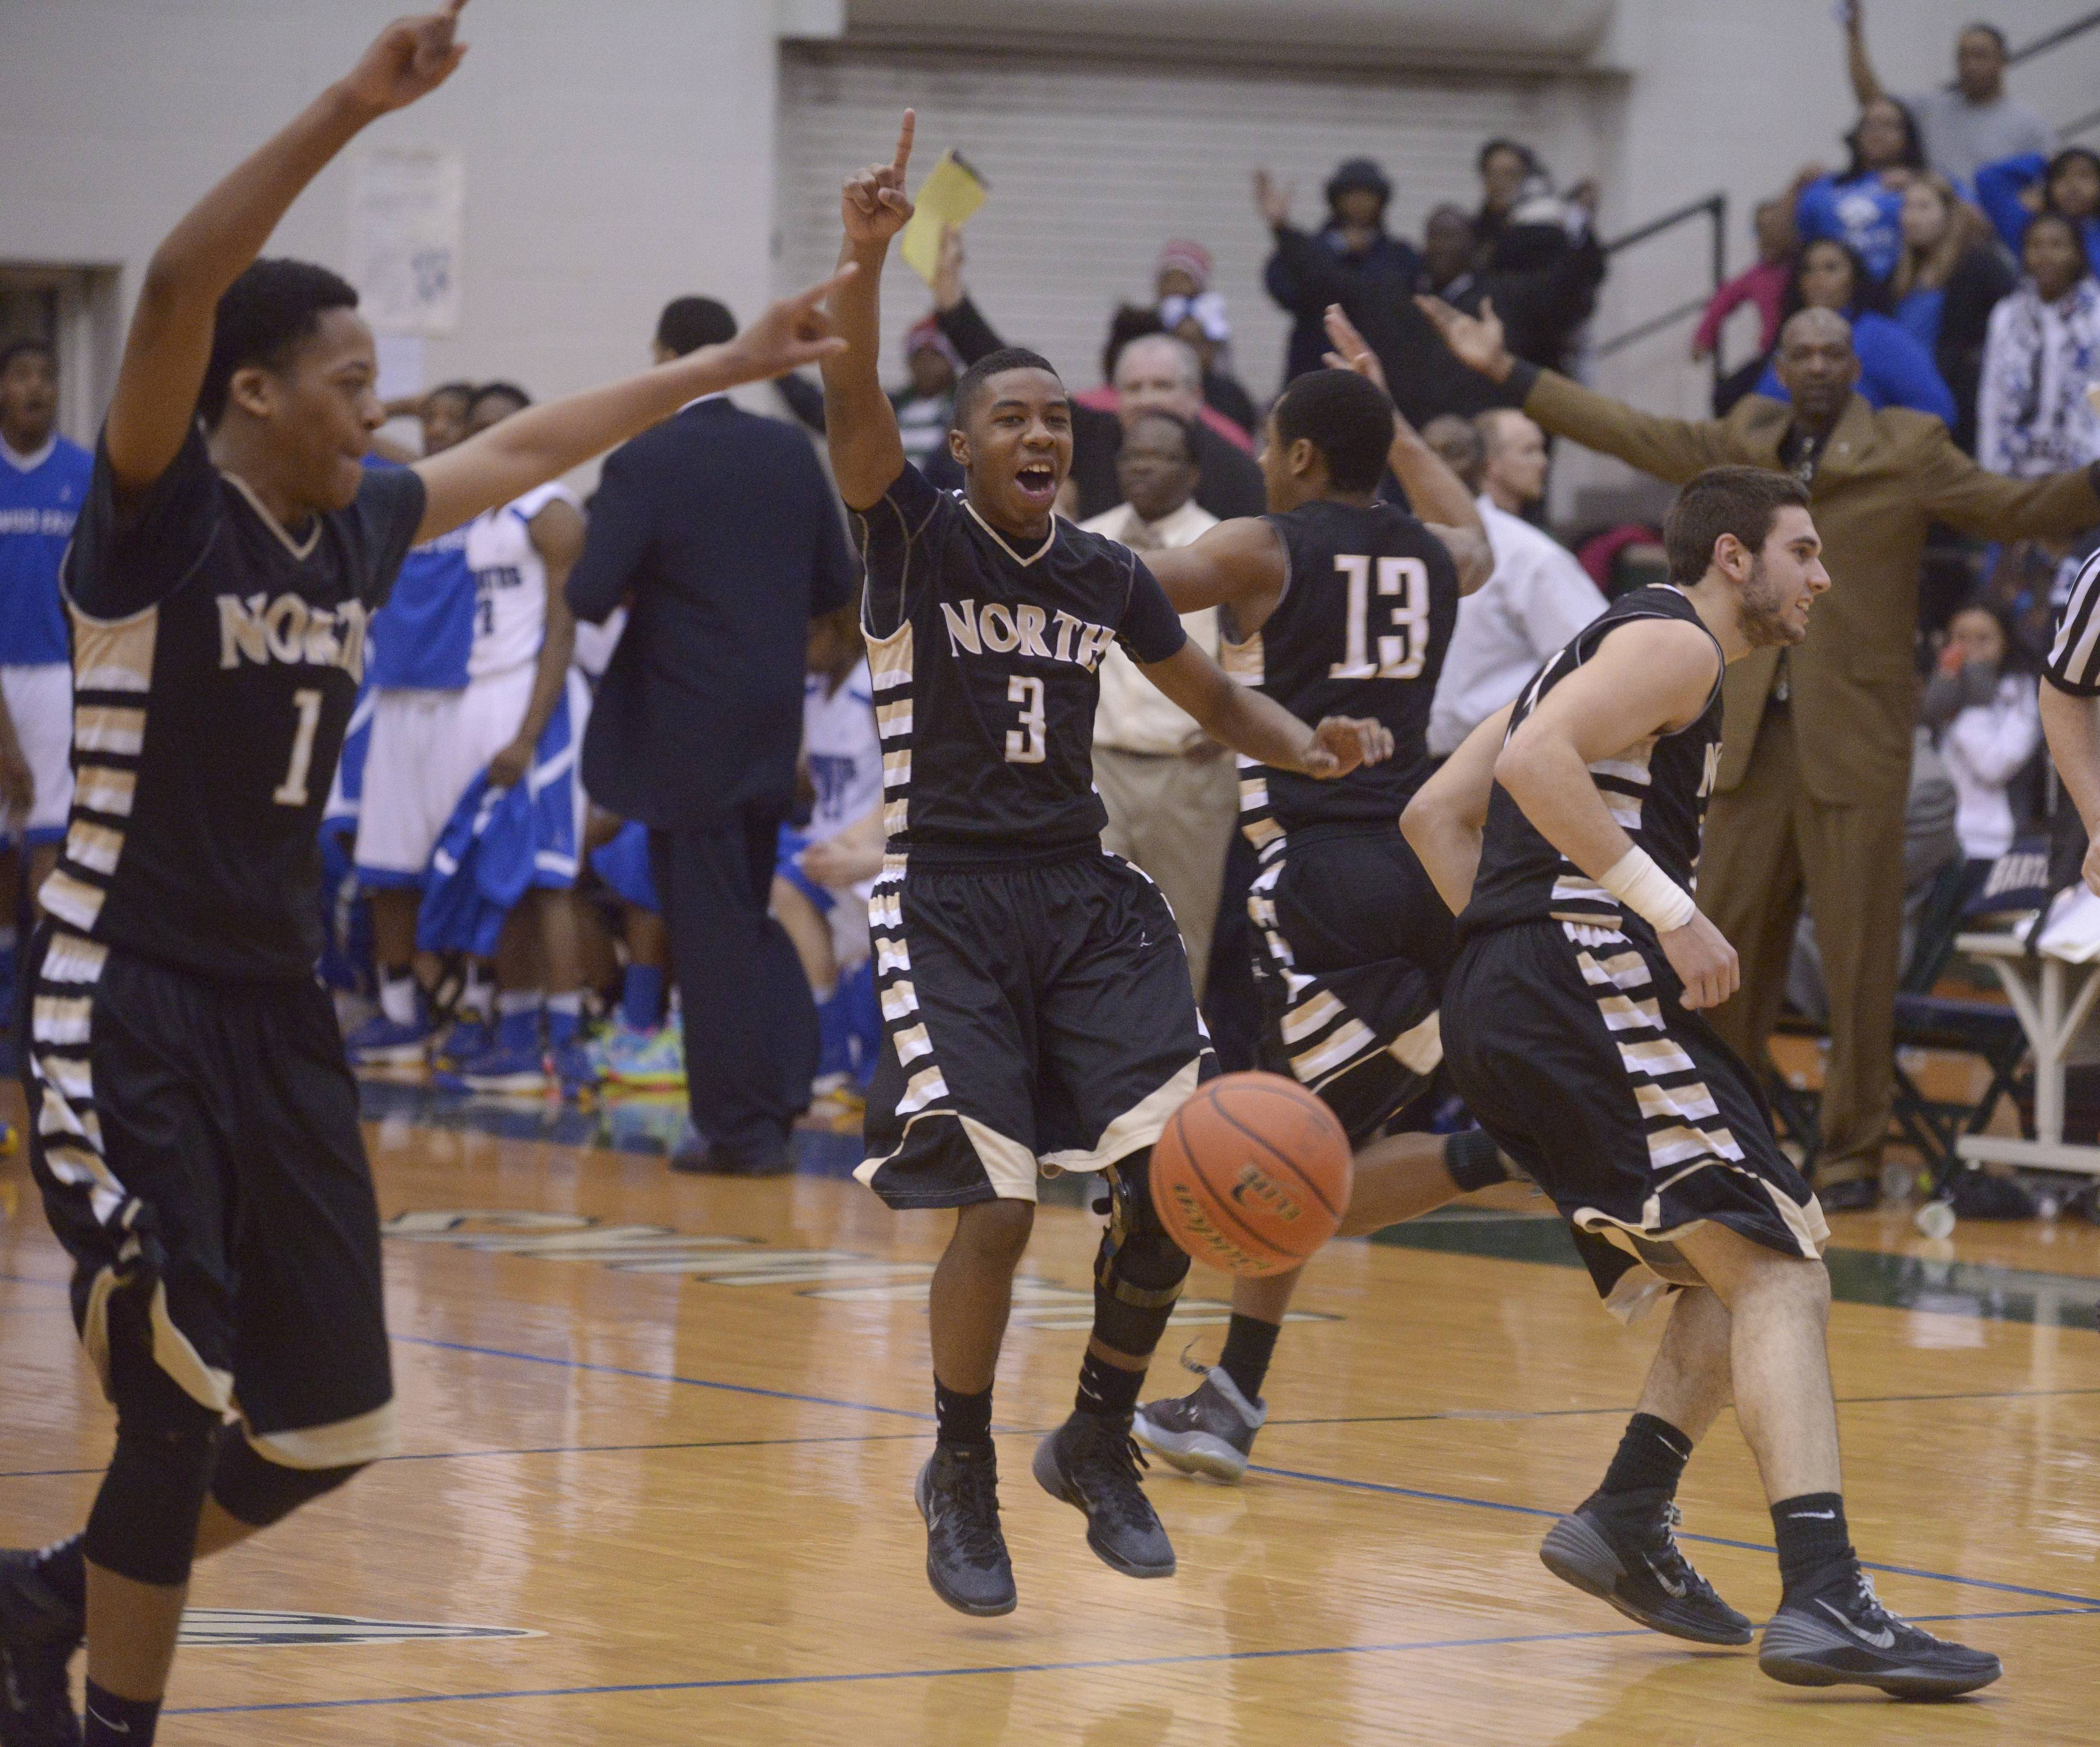 Glenbard North celebrates after defeating Proviso East in the Class 4A Bartlett sectional semifinal Wednesday.